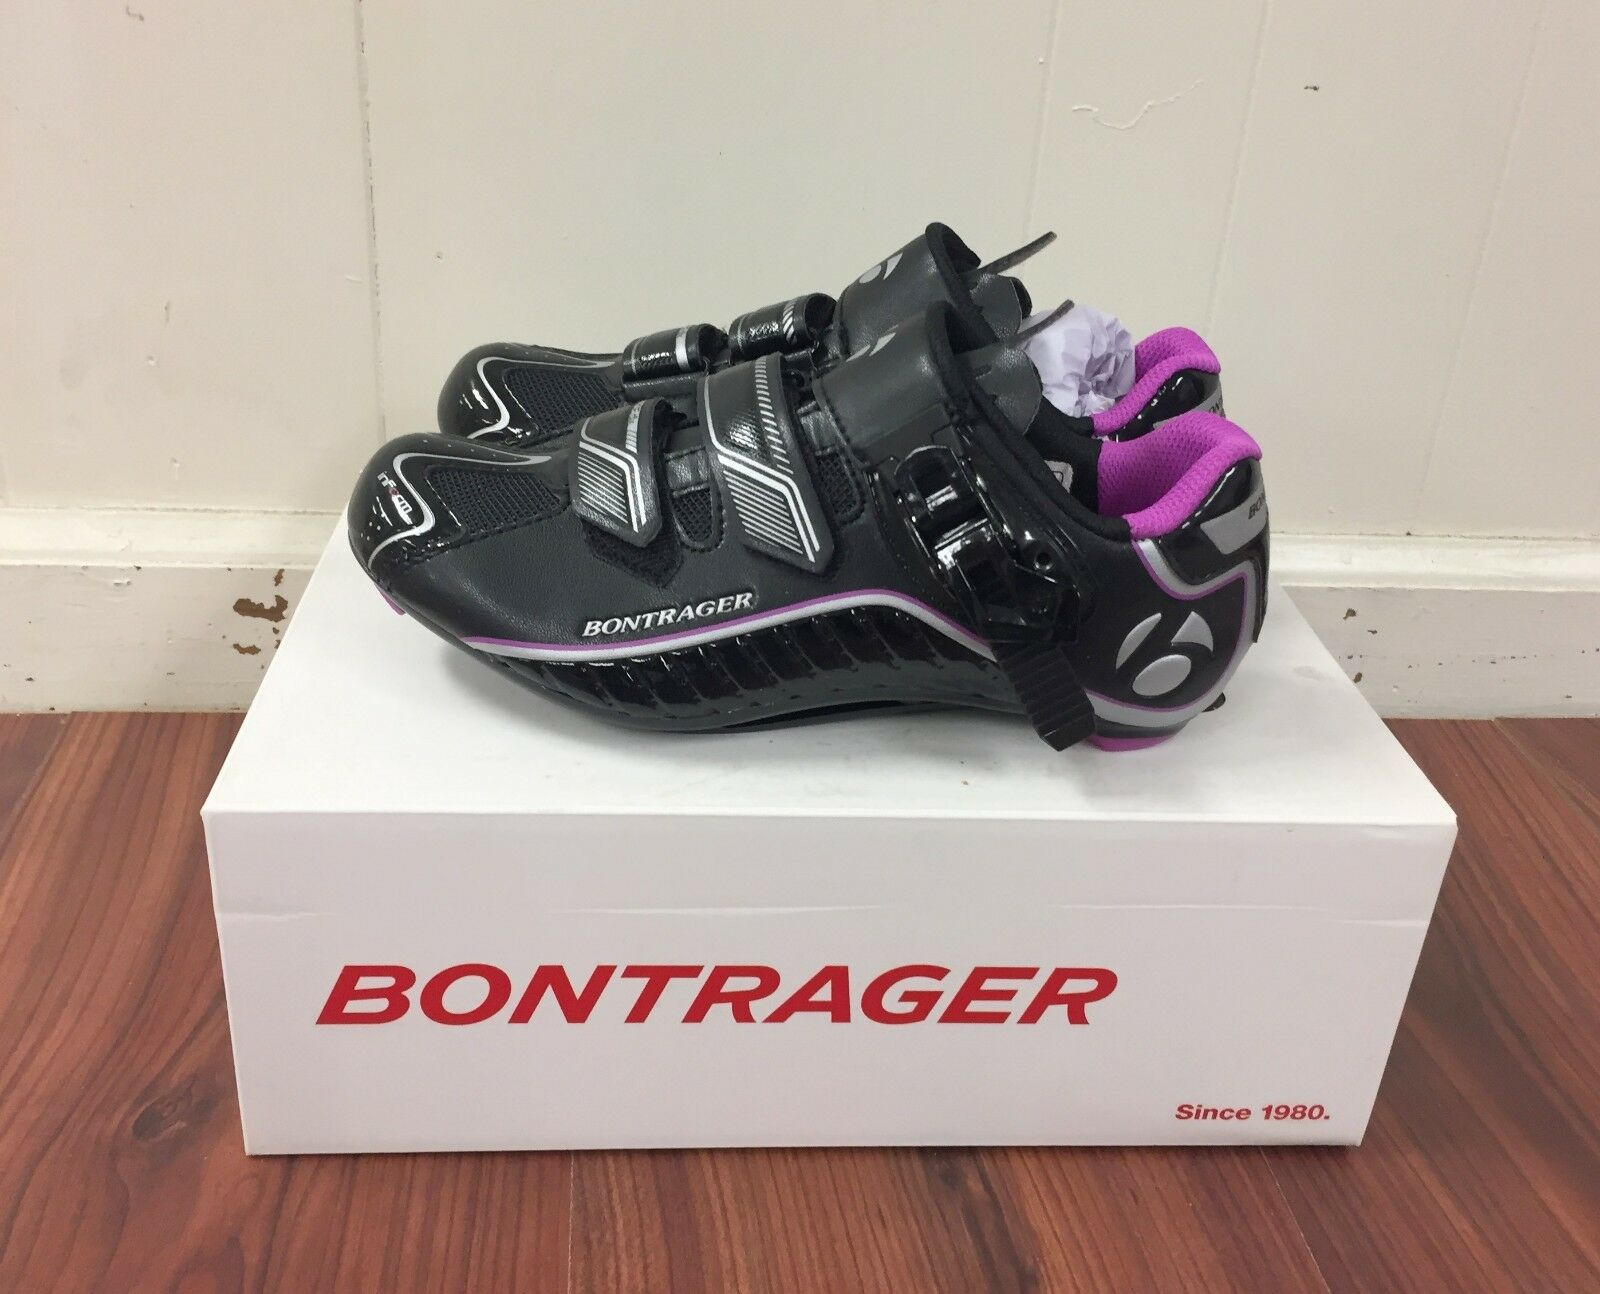 Bontrager Wouomo Race DLX strada sautope 37 EU 5.5 US nuovo in scatola